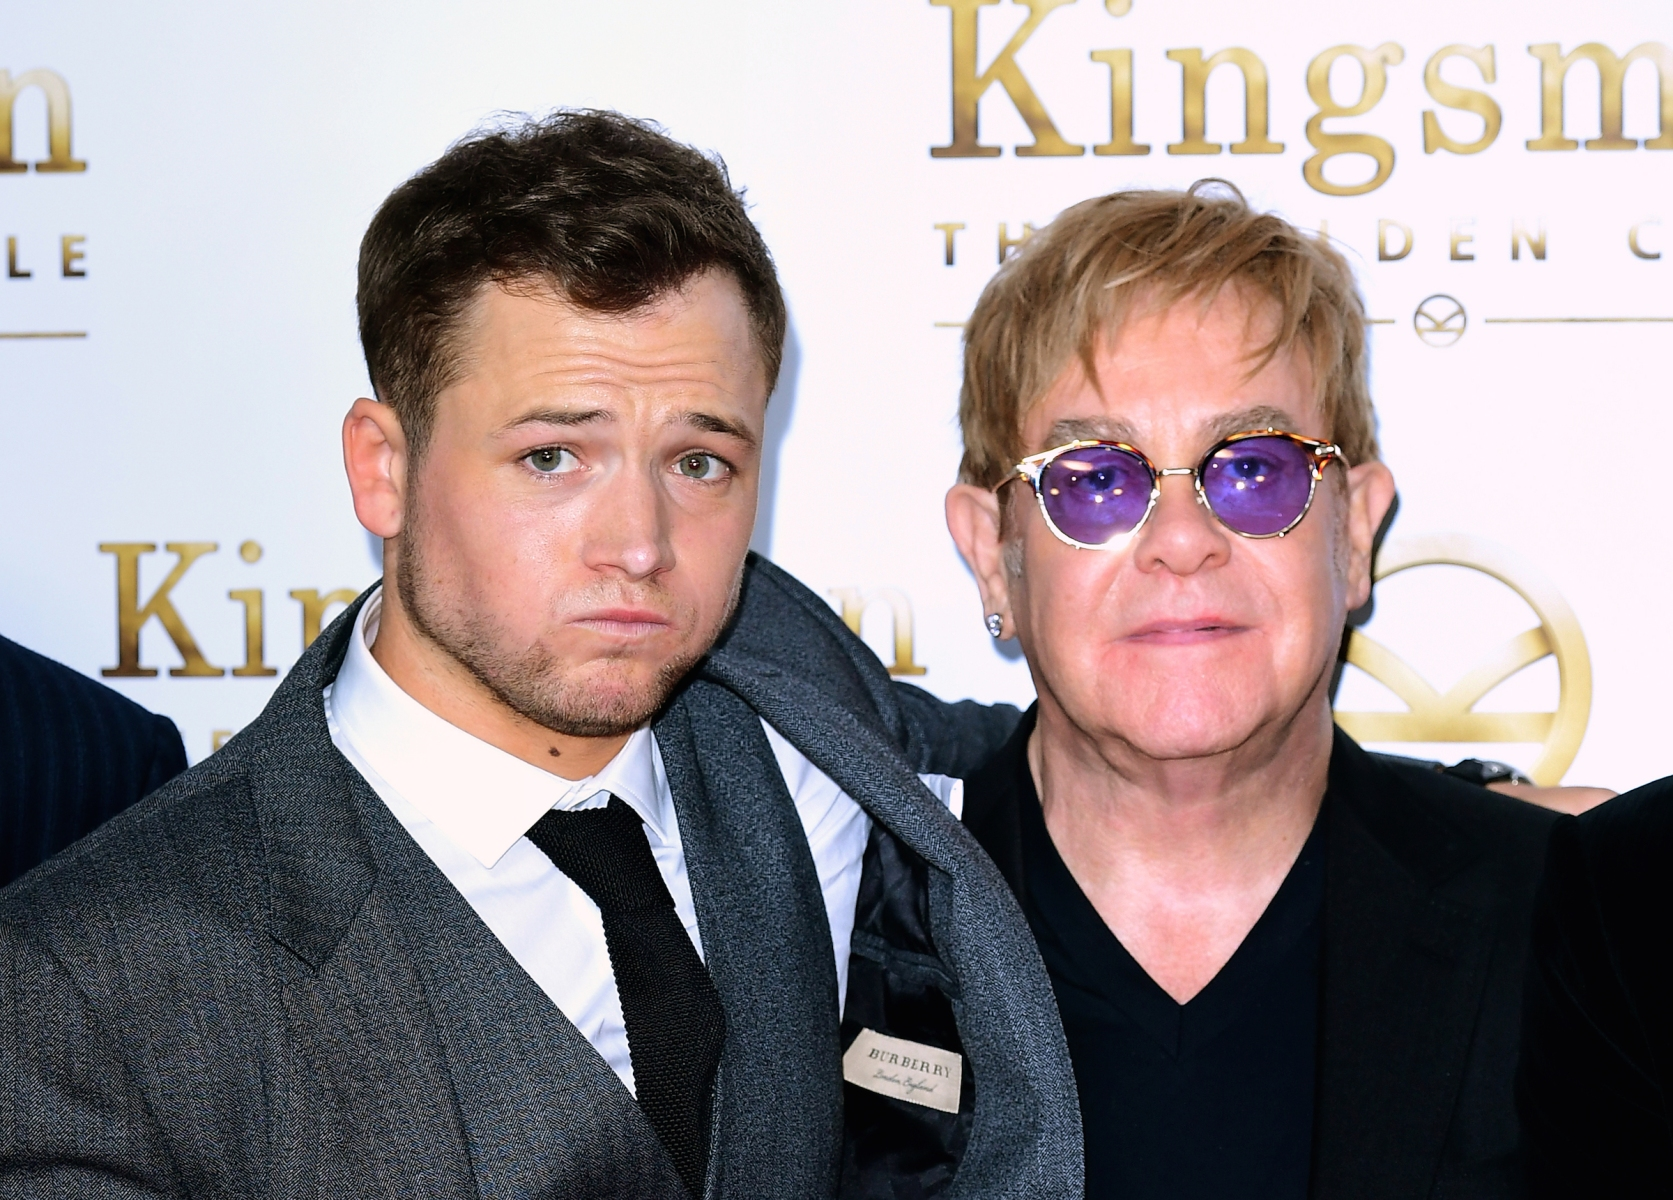 """Taron Egerton and Elton John attending the World Premiere of Kingsman: The Golden Circle, at Cineworld in Leicester Square, London. Egerton will play Elton John in the biopic """"Rocketman."""" (Photo by Ian West/PA Wire)"""